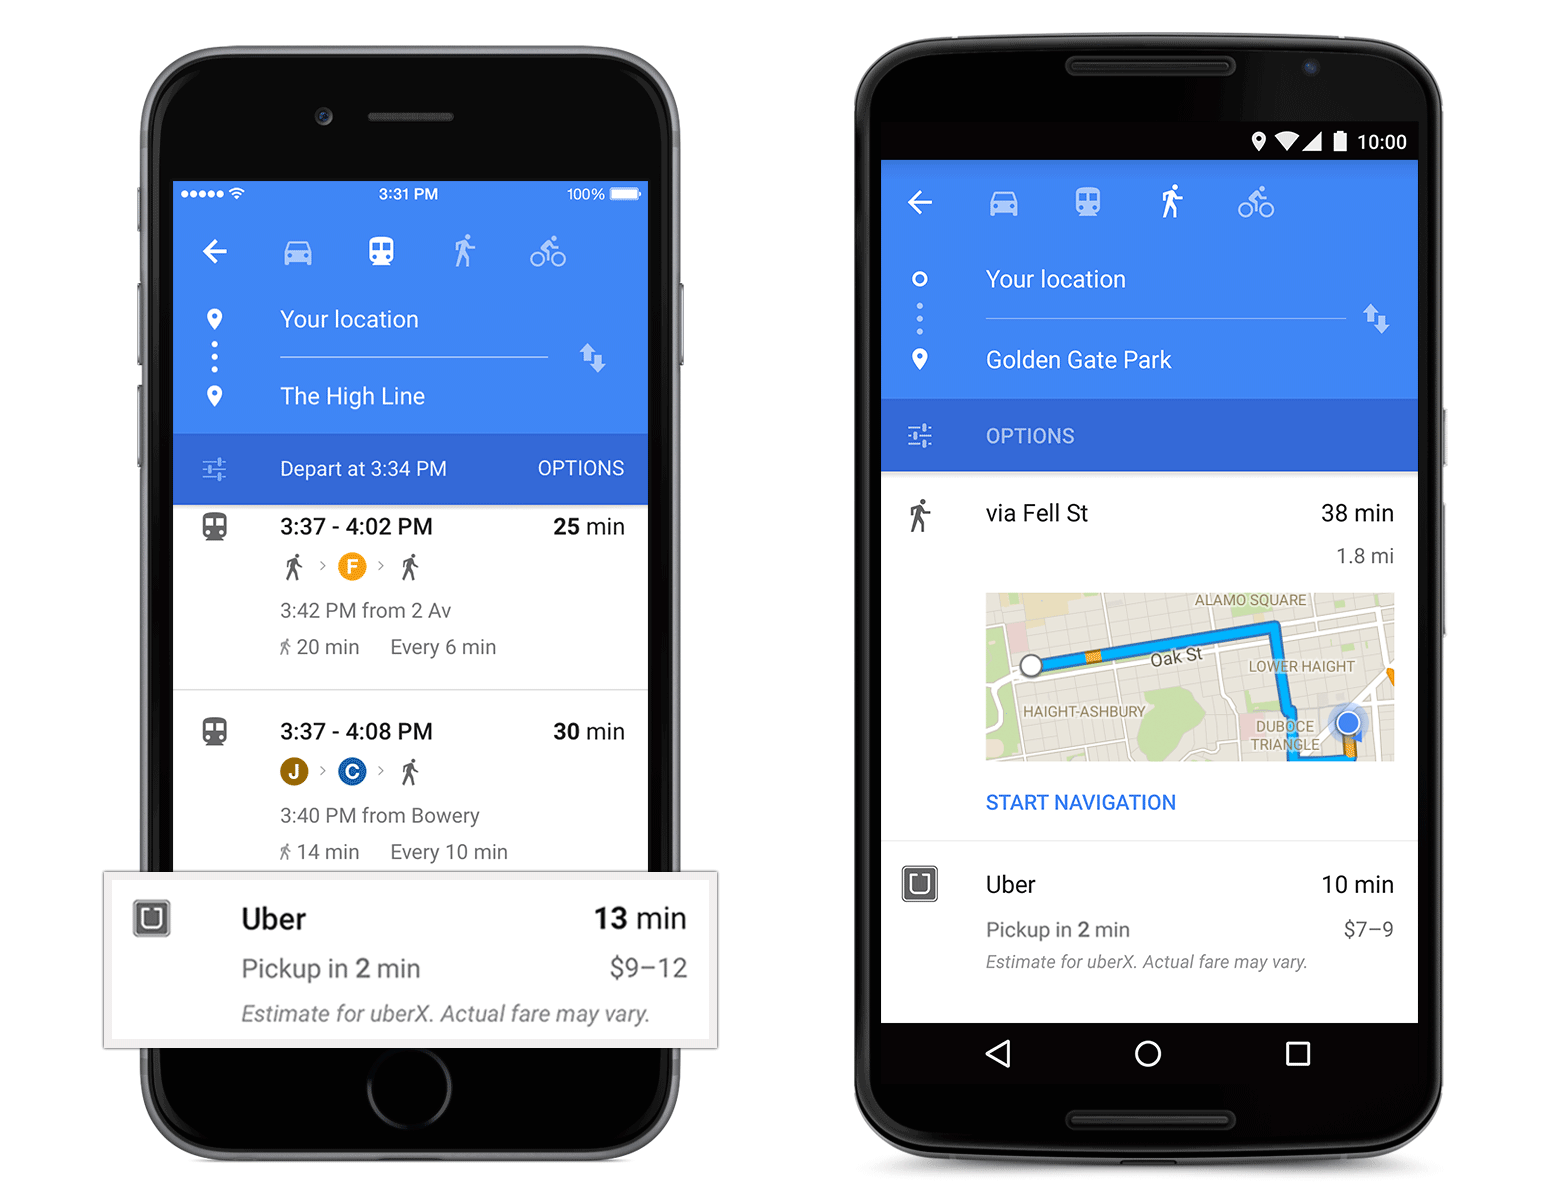 Google Maps Gets a Fresh New Material Design on Mobile | GUI ... on google maps mobile street view, google mobile app, google mobile de, android mobile application, google maps mobile alabama, spotify mobile application, amazon mobile application, foursquare mobile application, contacts mobile application, netflix mobile application, google mobile friendly, google maps desktop application, ipad mobile application, google maps mobile screenshot,